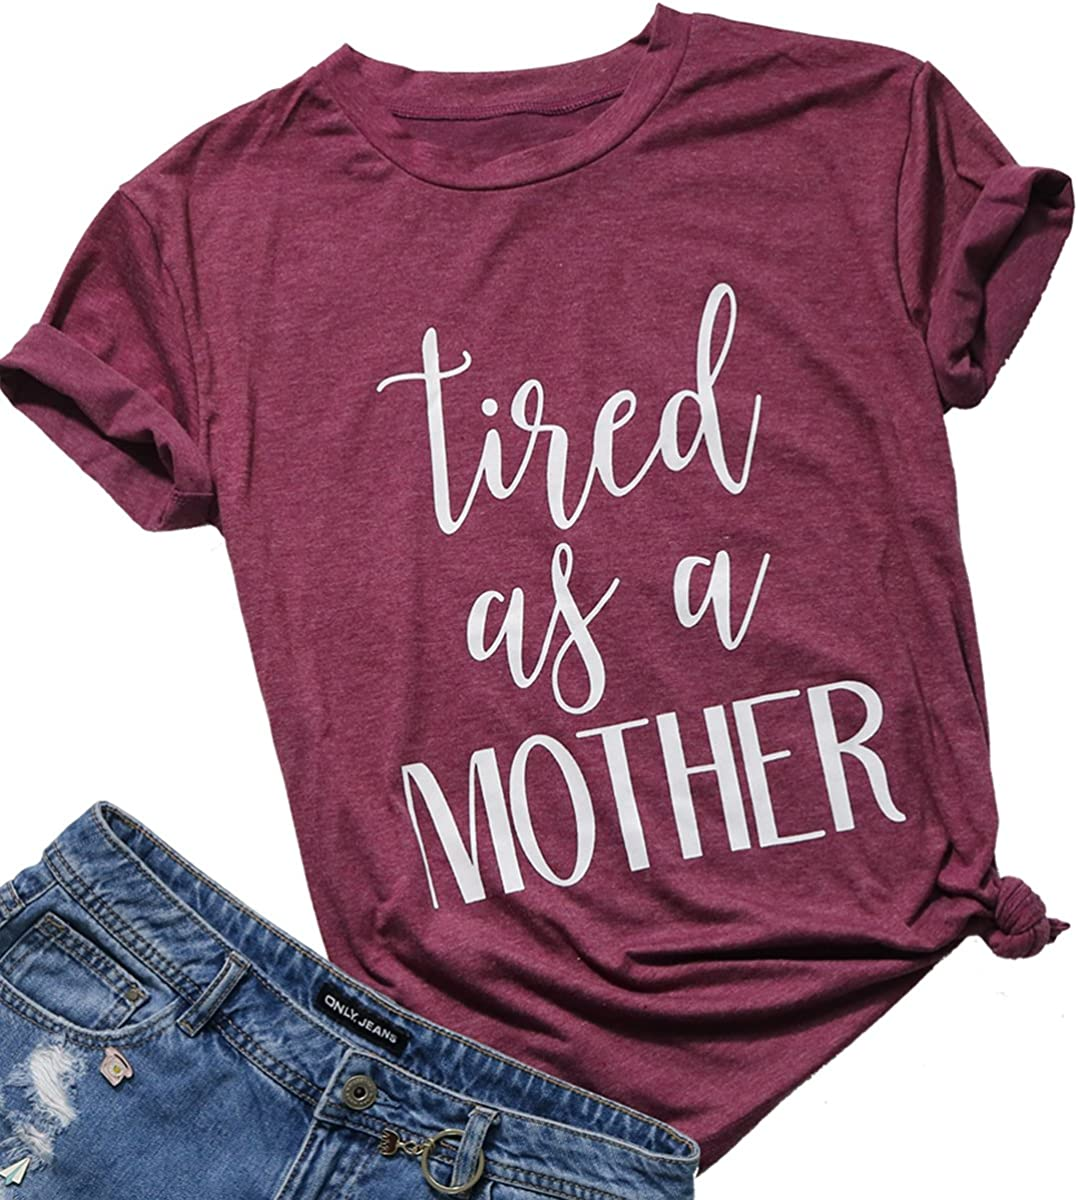 Tired as a Mother Shirt Mom Life Shirt Casual Short Sleeve Graphic Tee Tops Mama T Shirts for Women